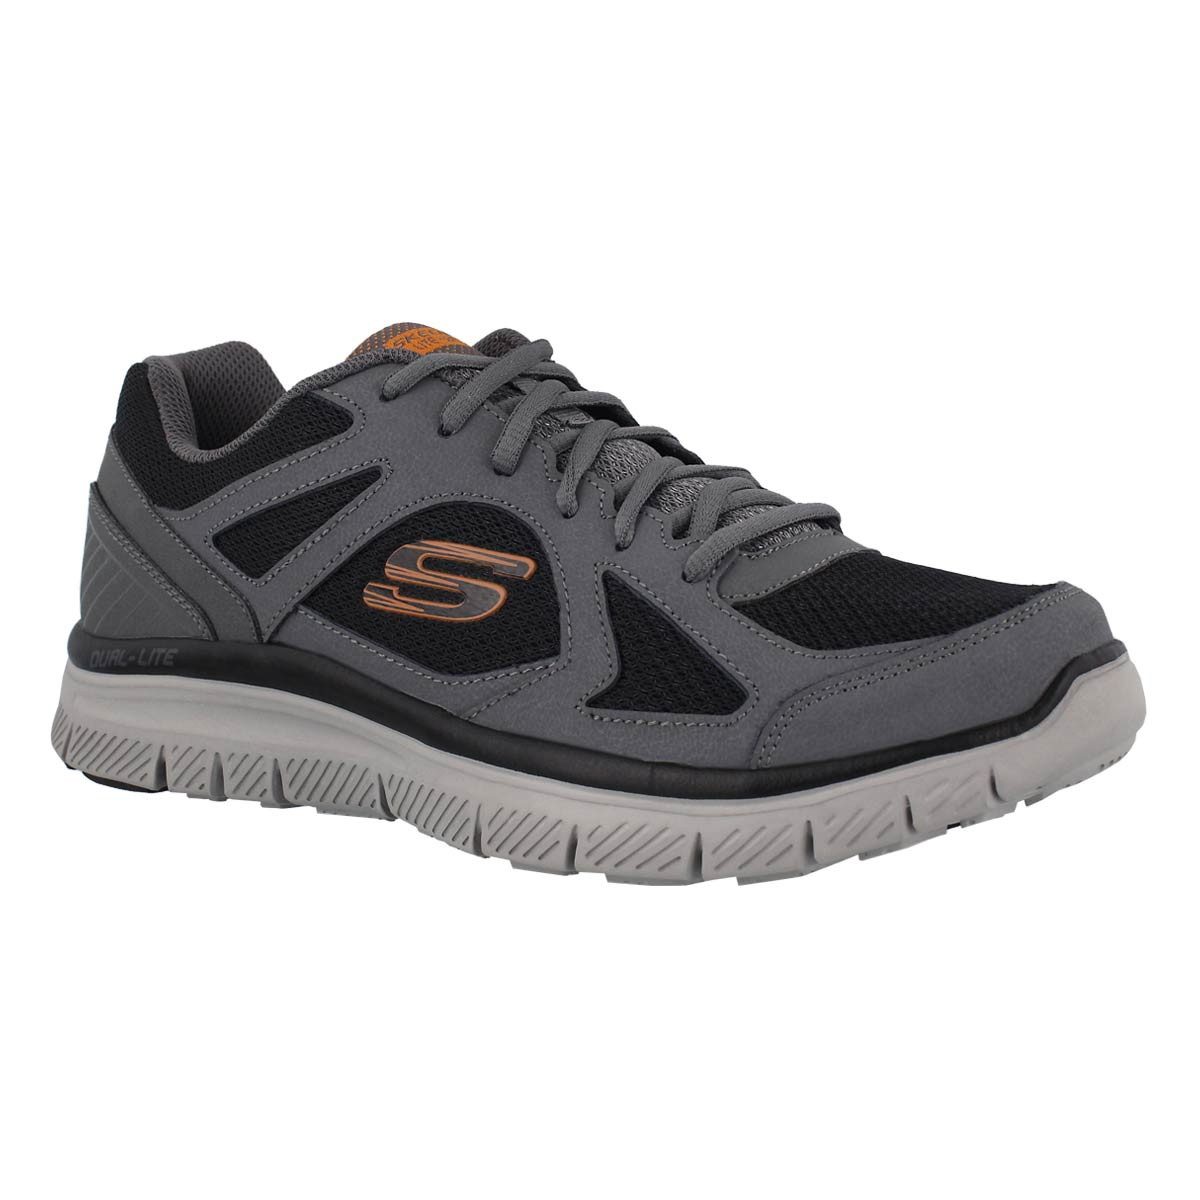 Men's FLEX ADVANTAGE ZIZZO grey/black sneakers